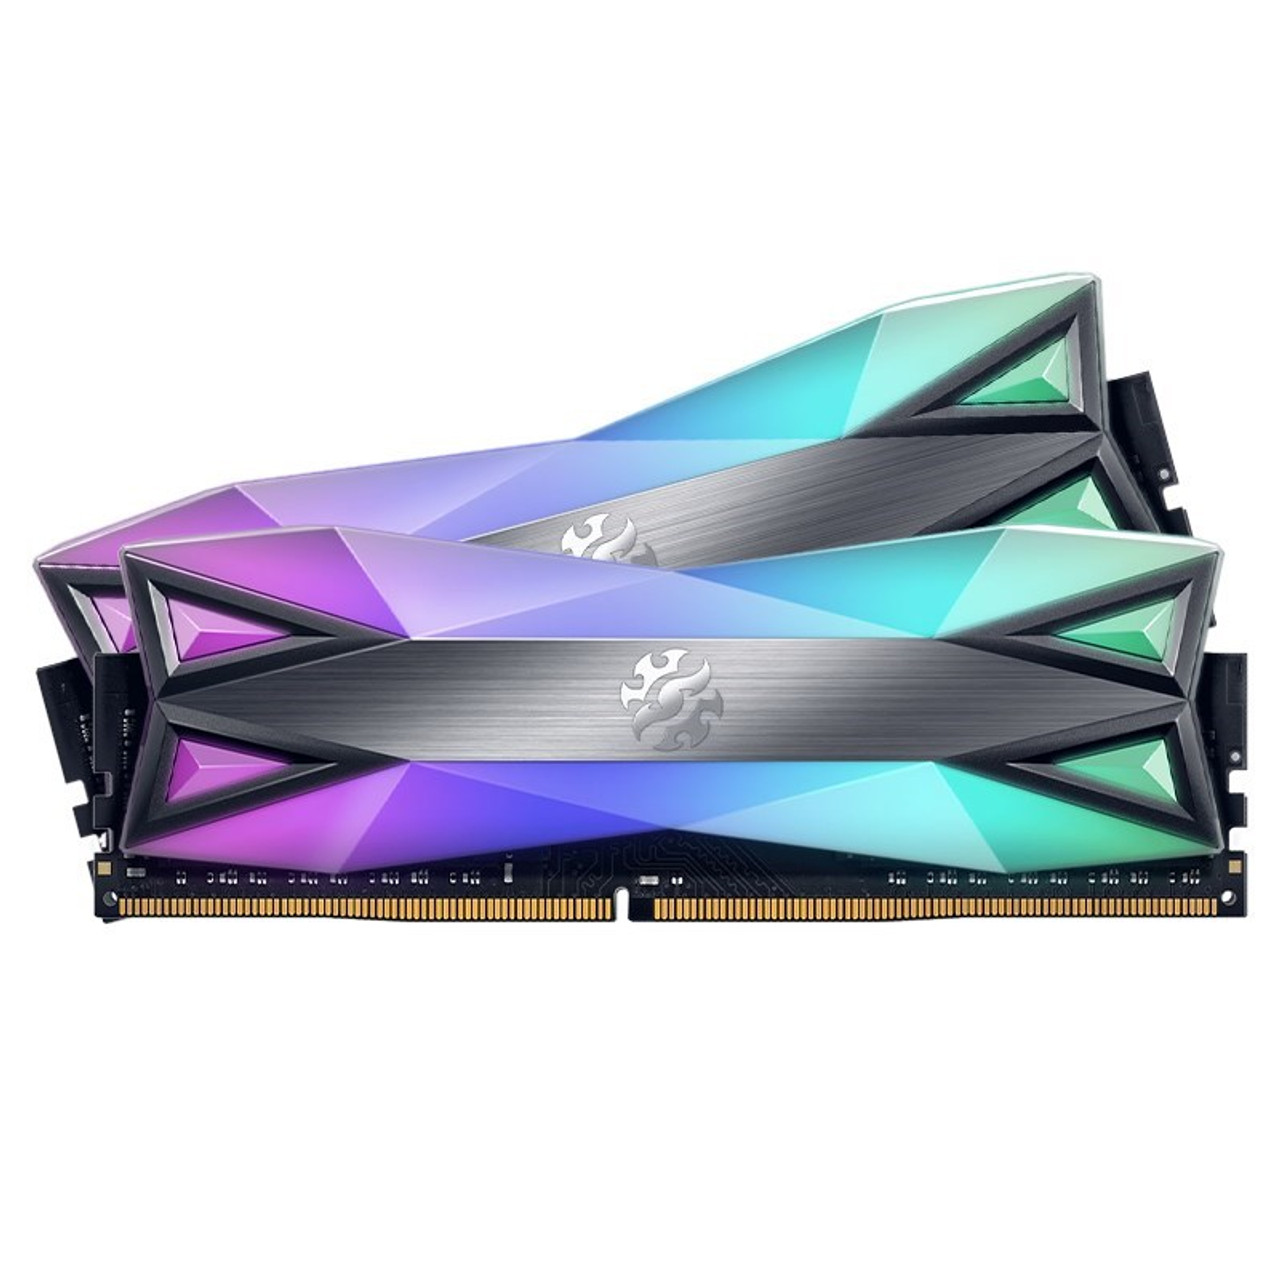 Image for Adata XPG Spectrix D60G 32GB (2x 16GB) DDR4 3600MHz RGB Memory CX Computer Superstore